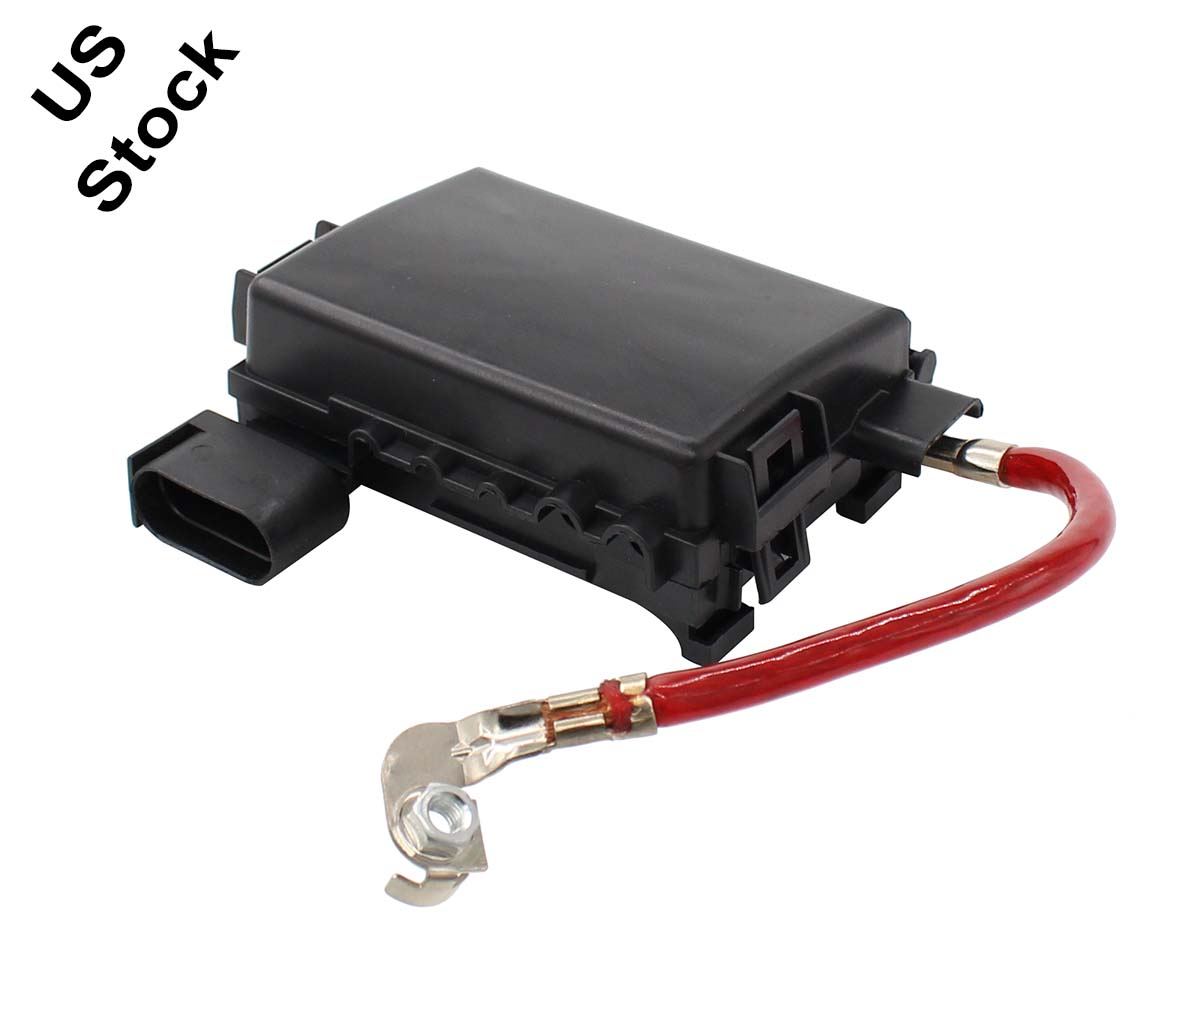 Fuse Box Battery Terminal 1j0937550a For 1999 2004 Vw Jetta Golf Mk4 Volkswagen Beetle New